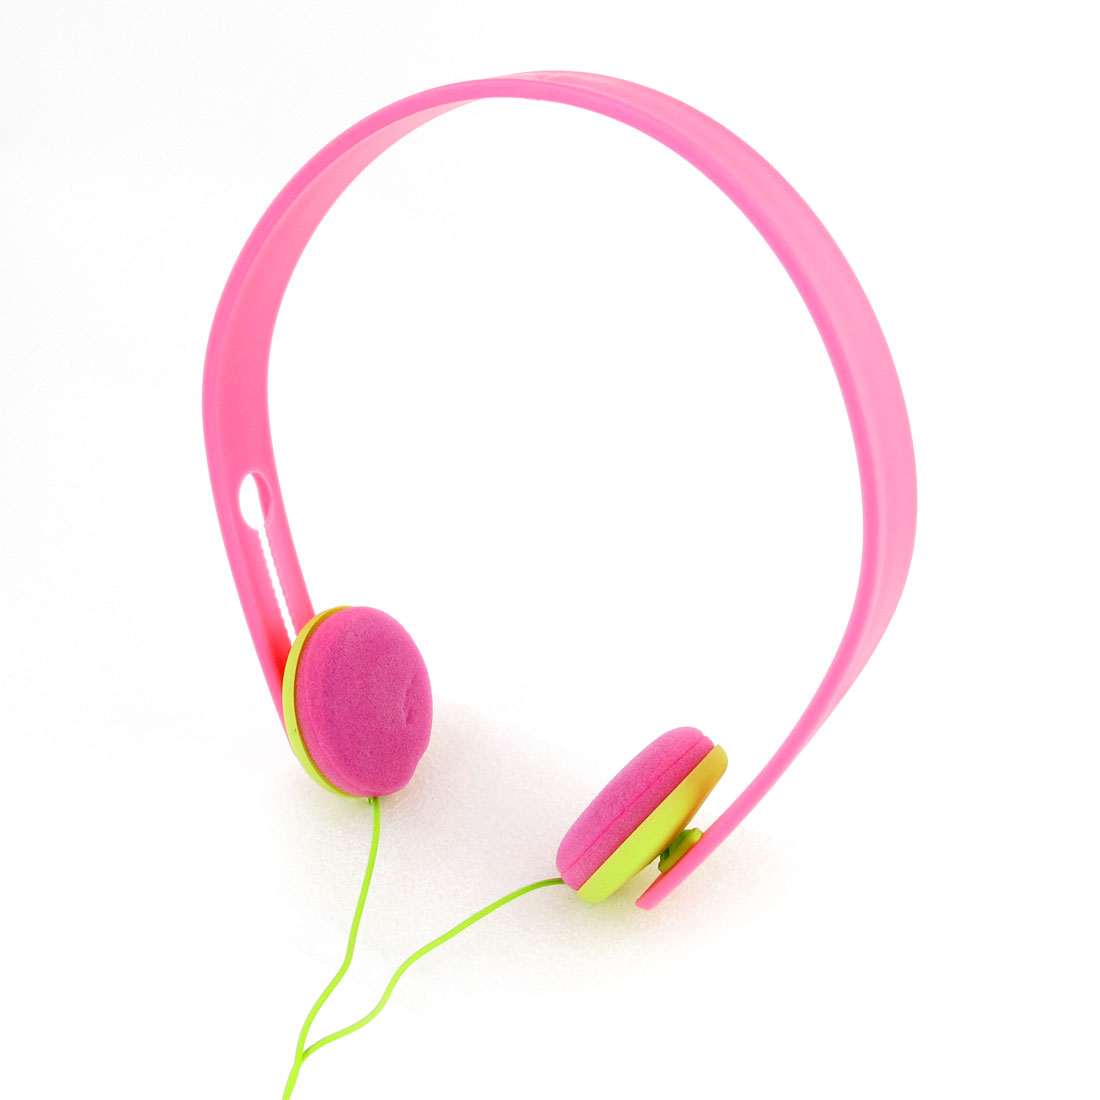 1.2M Long Cable 3.5mm Plug Earphone Headphone Pink for Laptop PC Computer